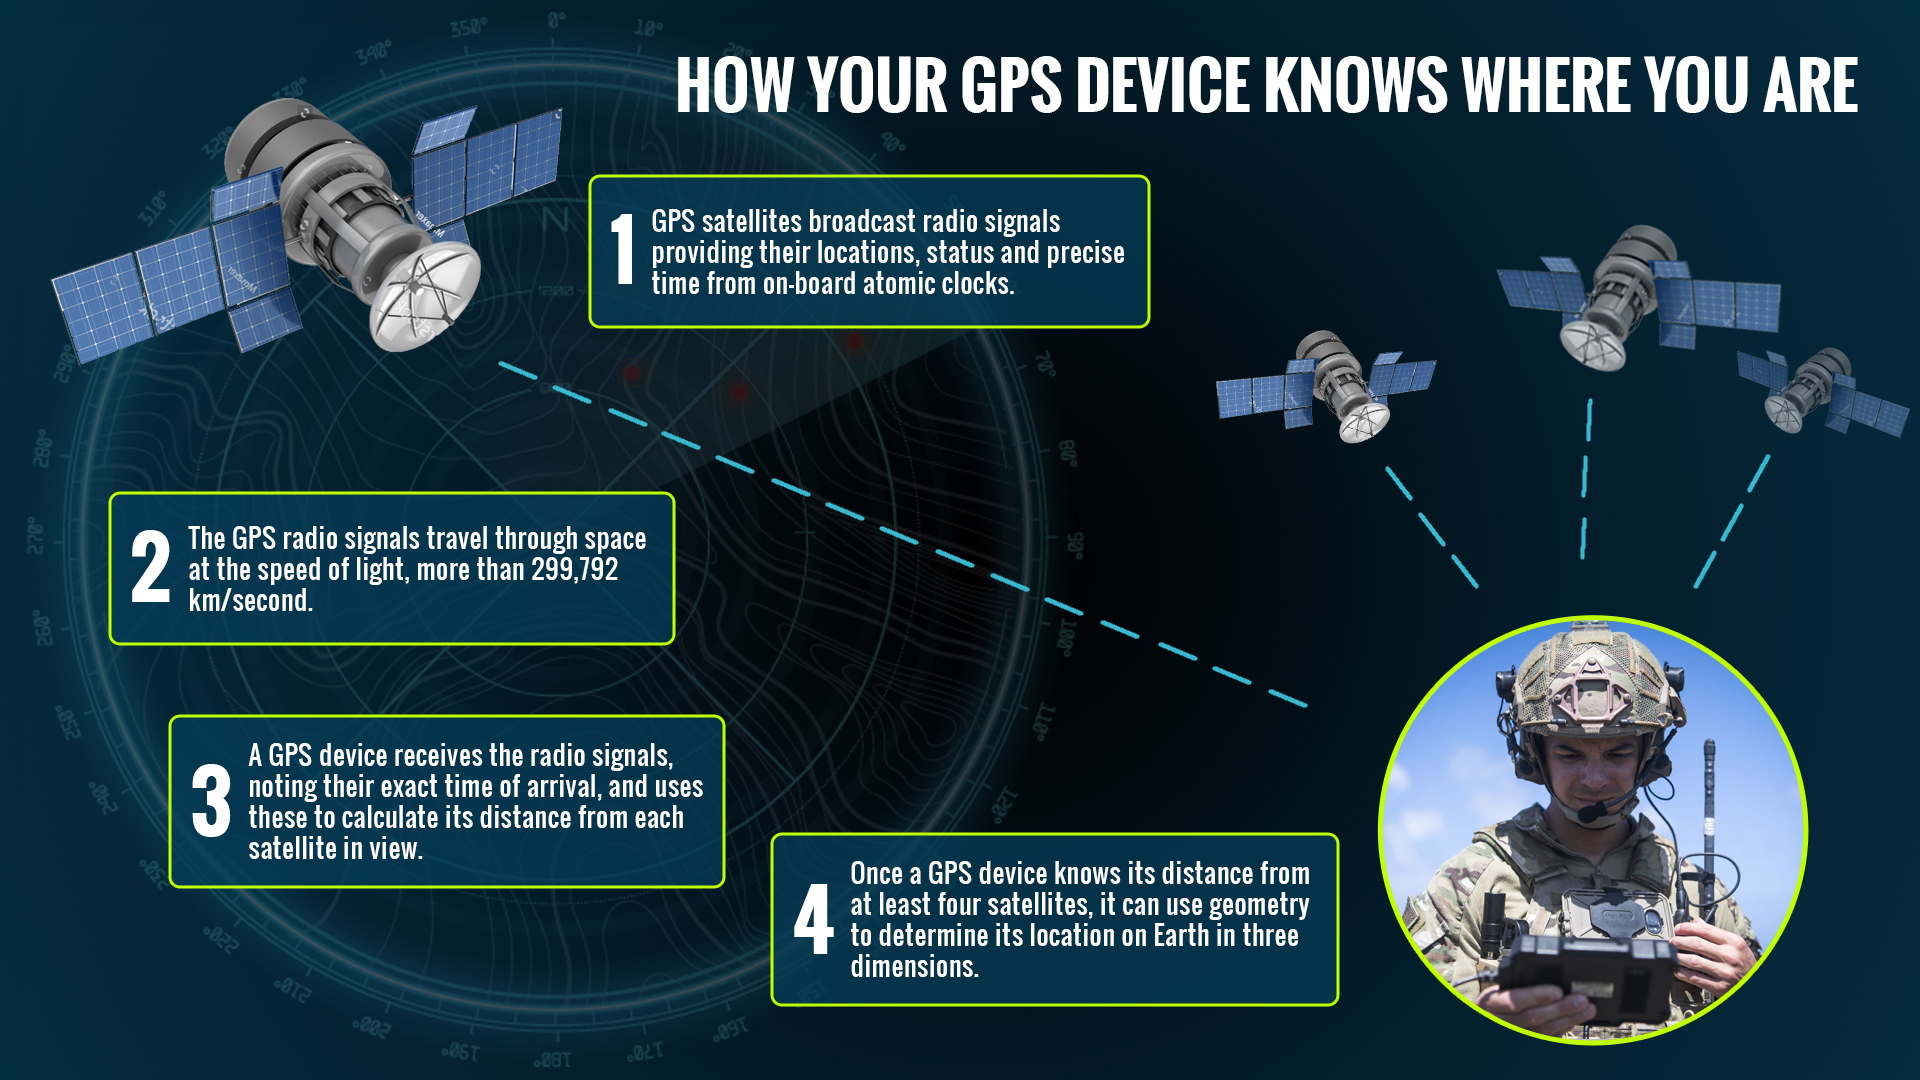 how gps knows where you are infographic